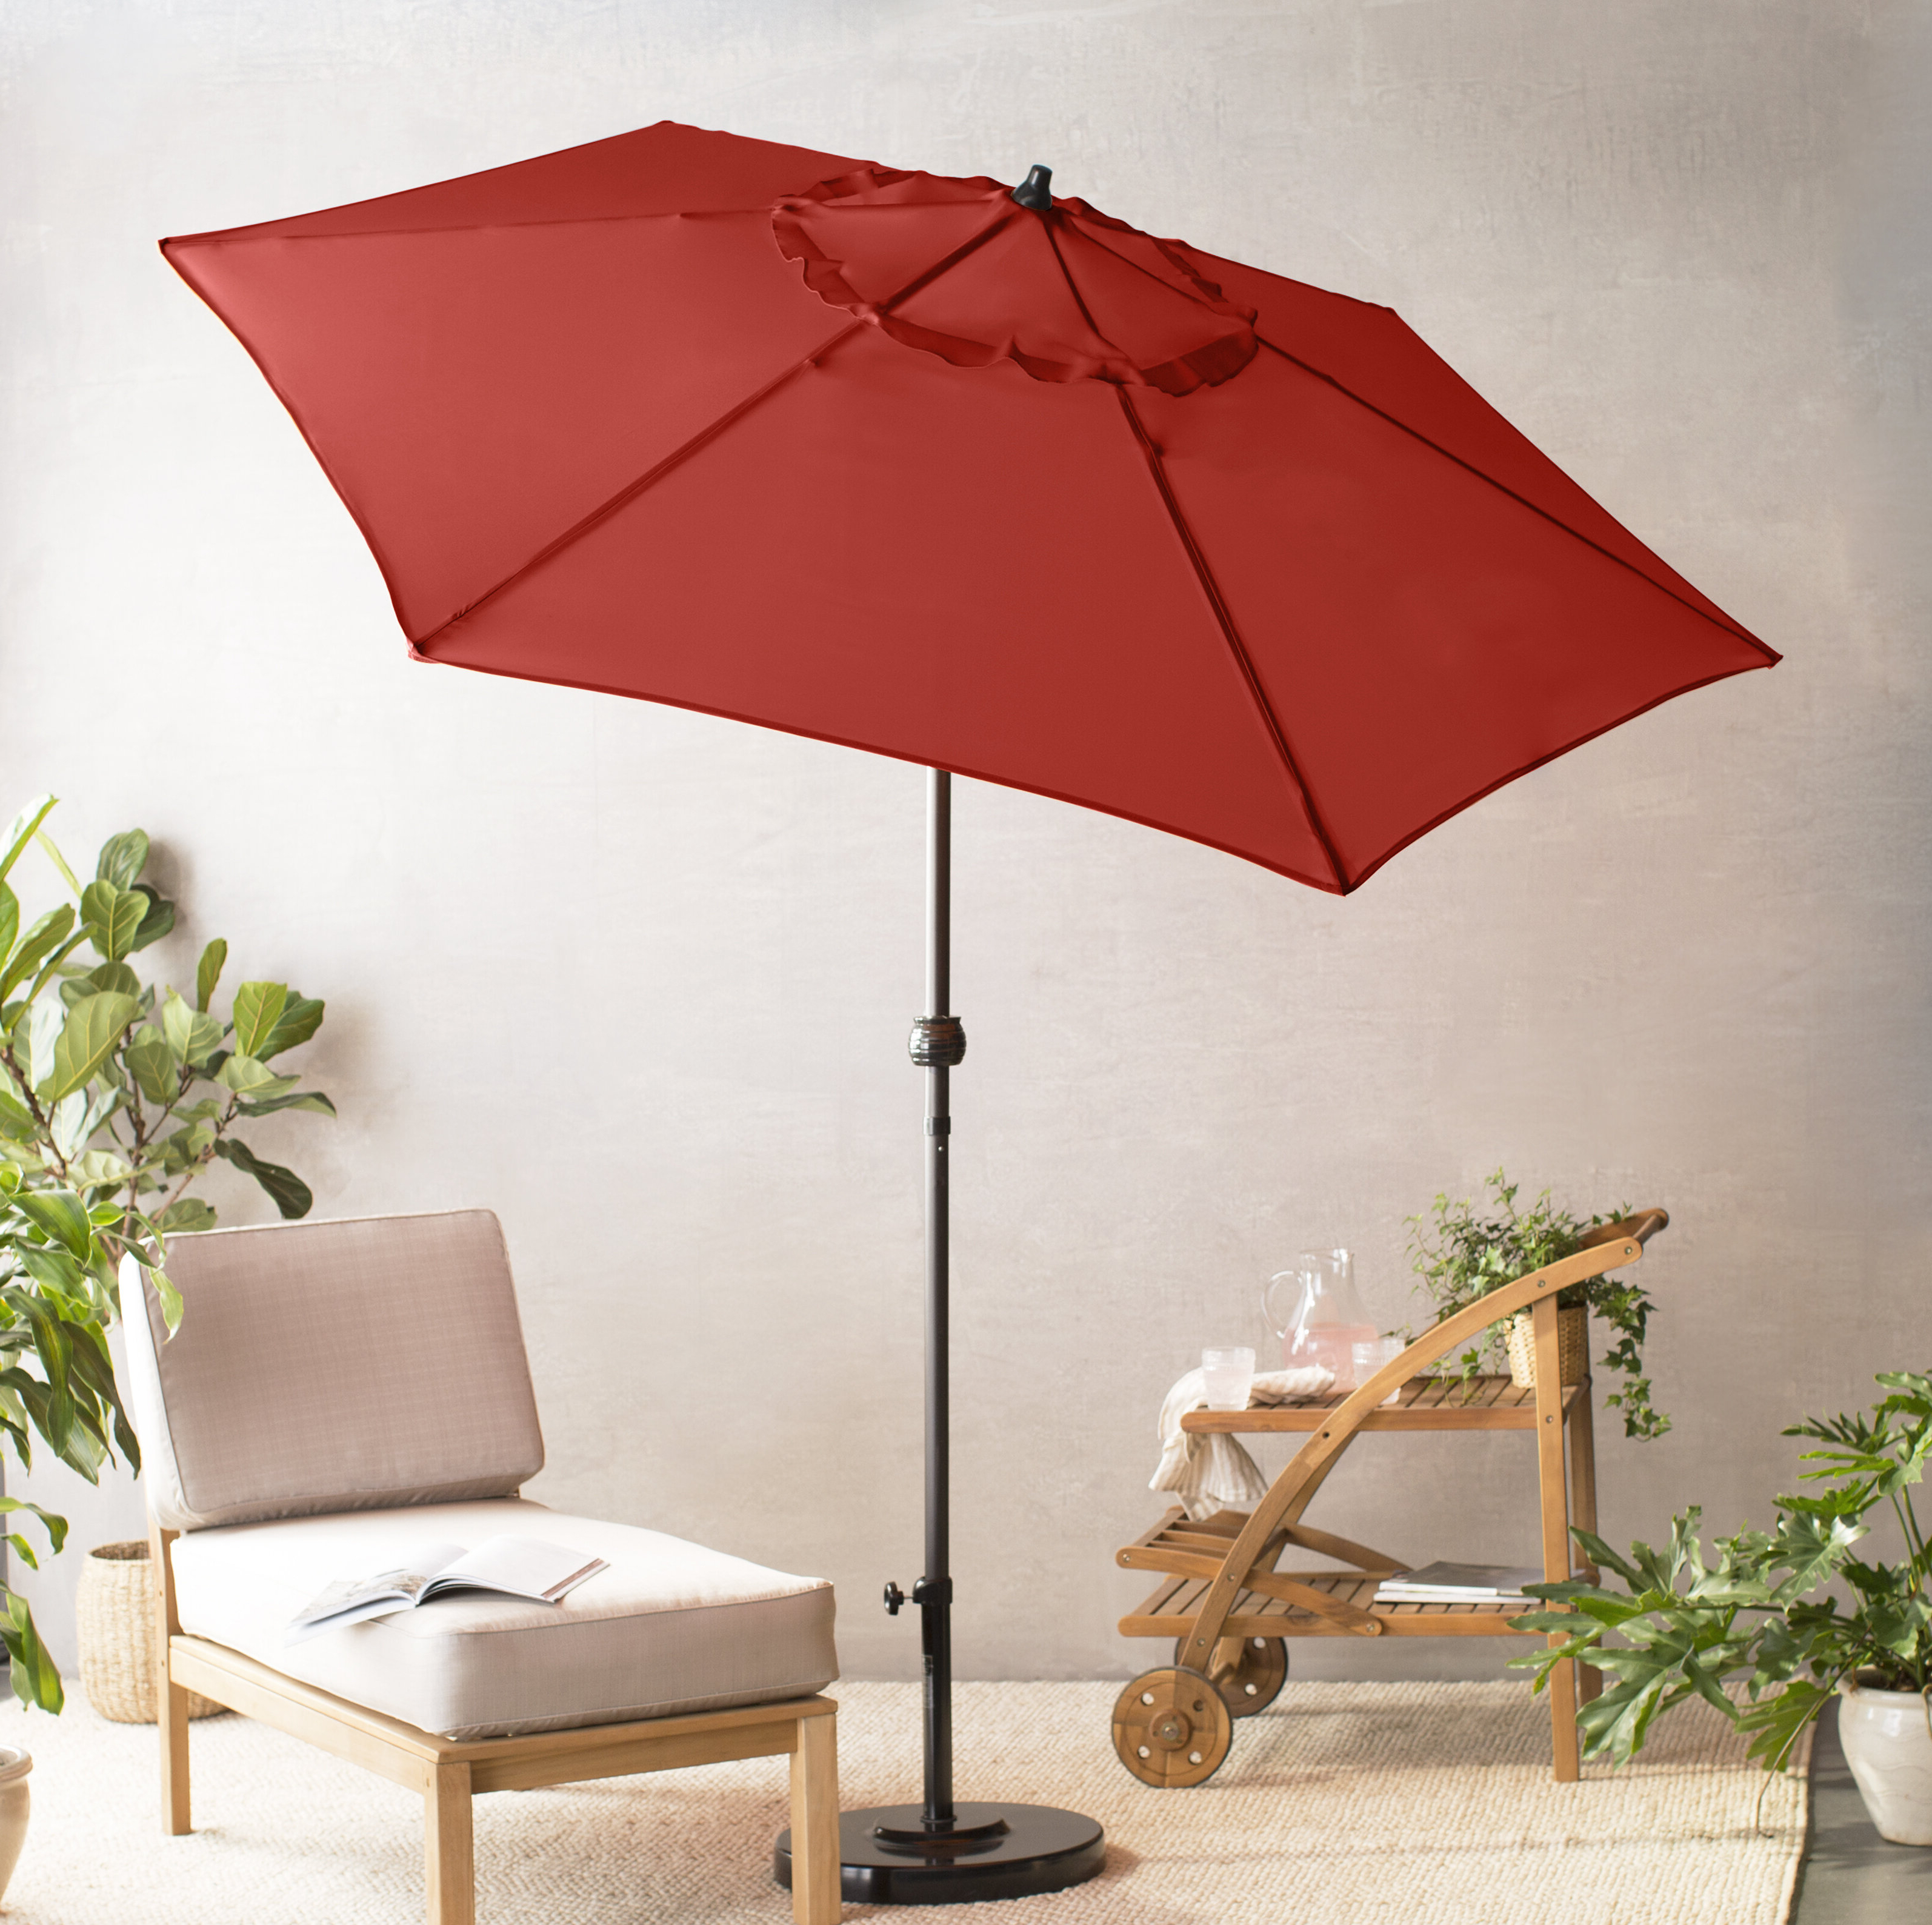 Kearney 9' Market Umbrella For Most Recent Kelton Market Umbrellas (View 8 of 20)